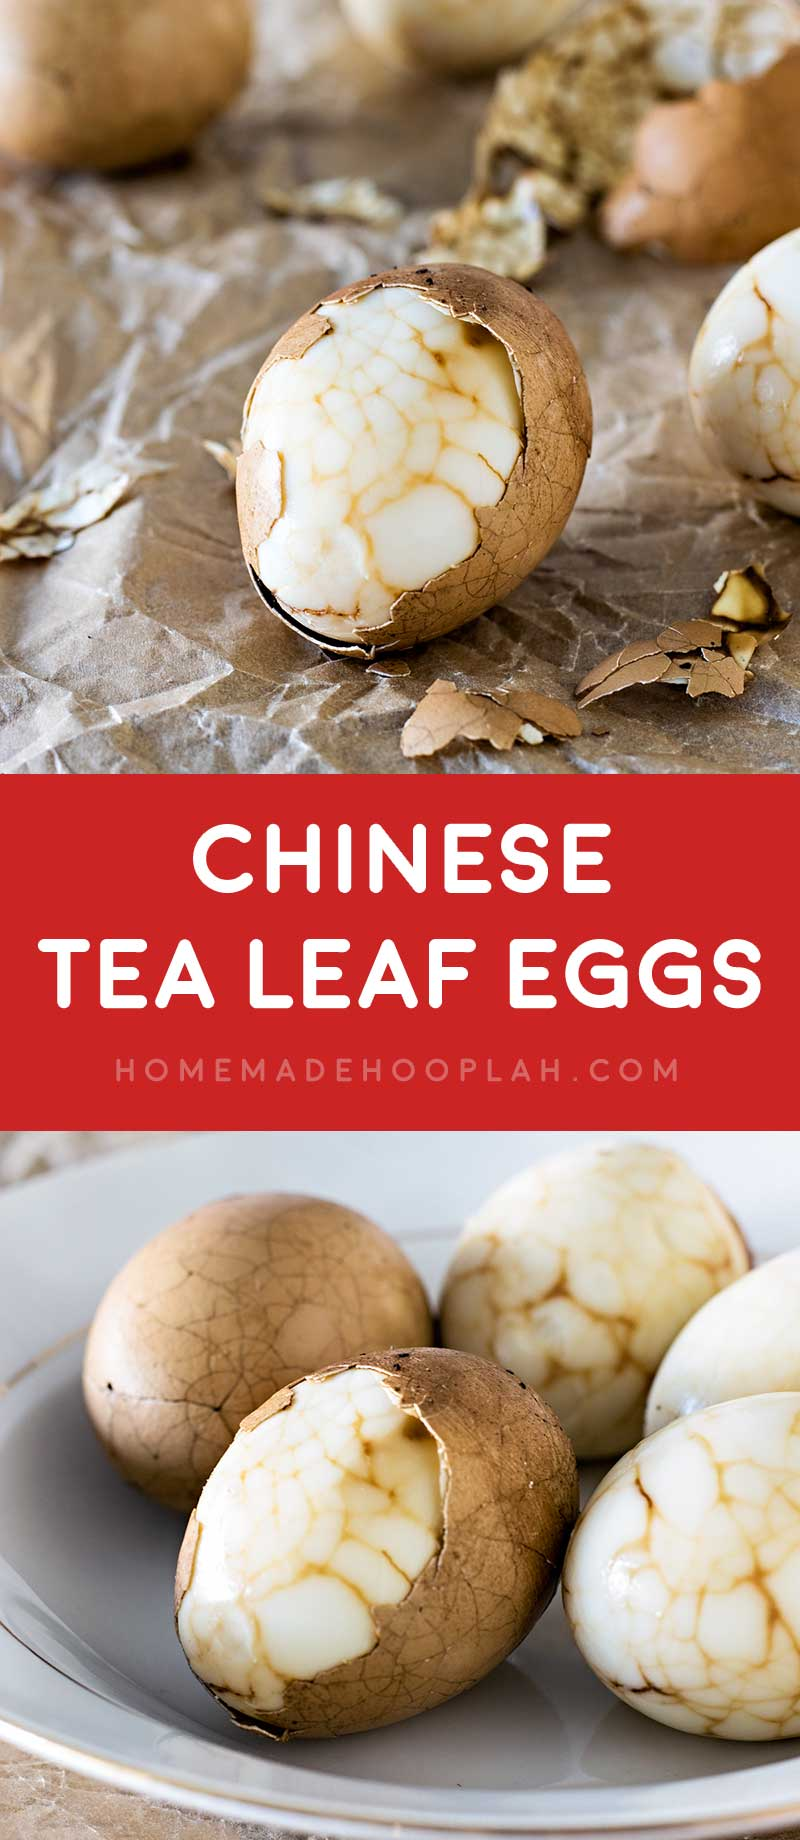 Chinese Tea Leaf Eggs! Celebrate Chinese New Year with traditional Chinese tea leaf eggs, spiked with a touch of orange for good fortune for the next year! #KikkomanCNY #spon @kikkomanusa | HomemadeHooplah.com